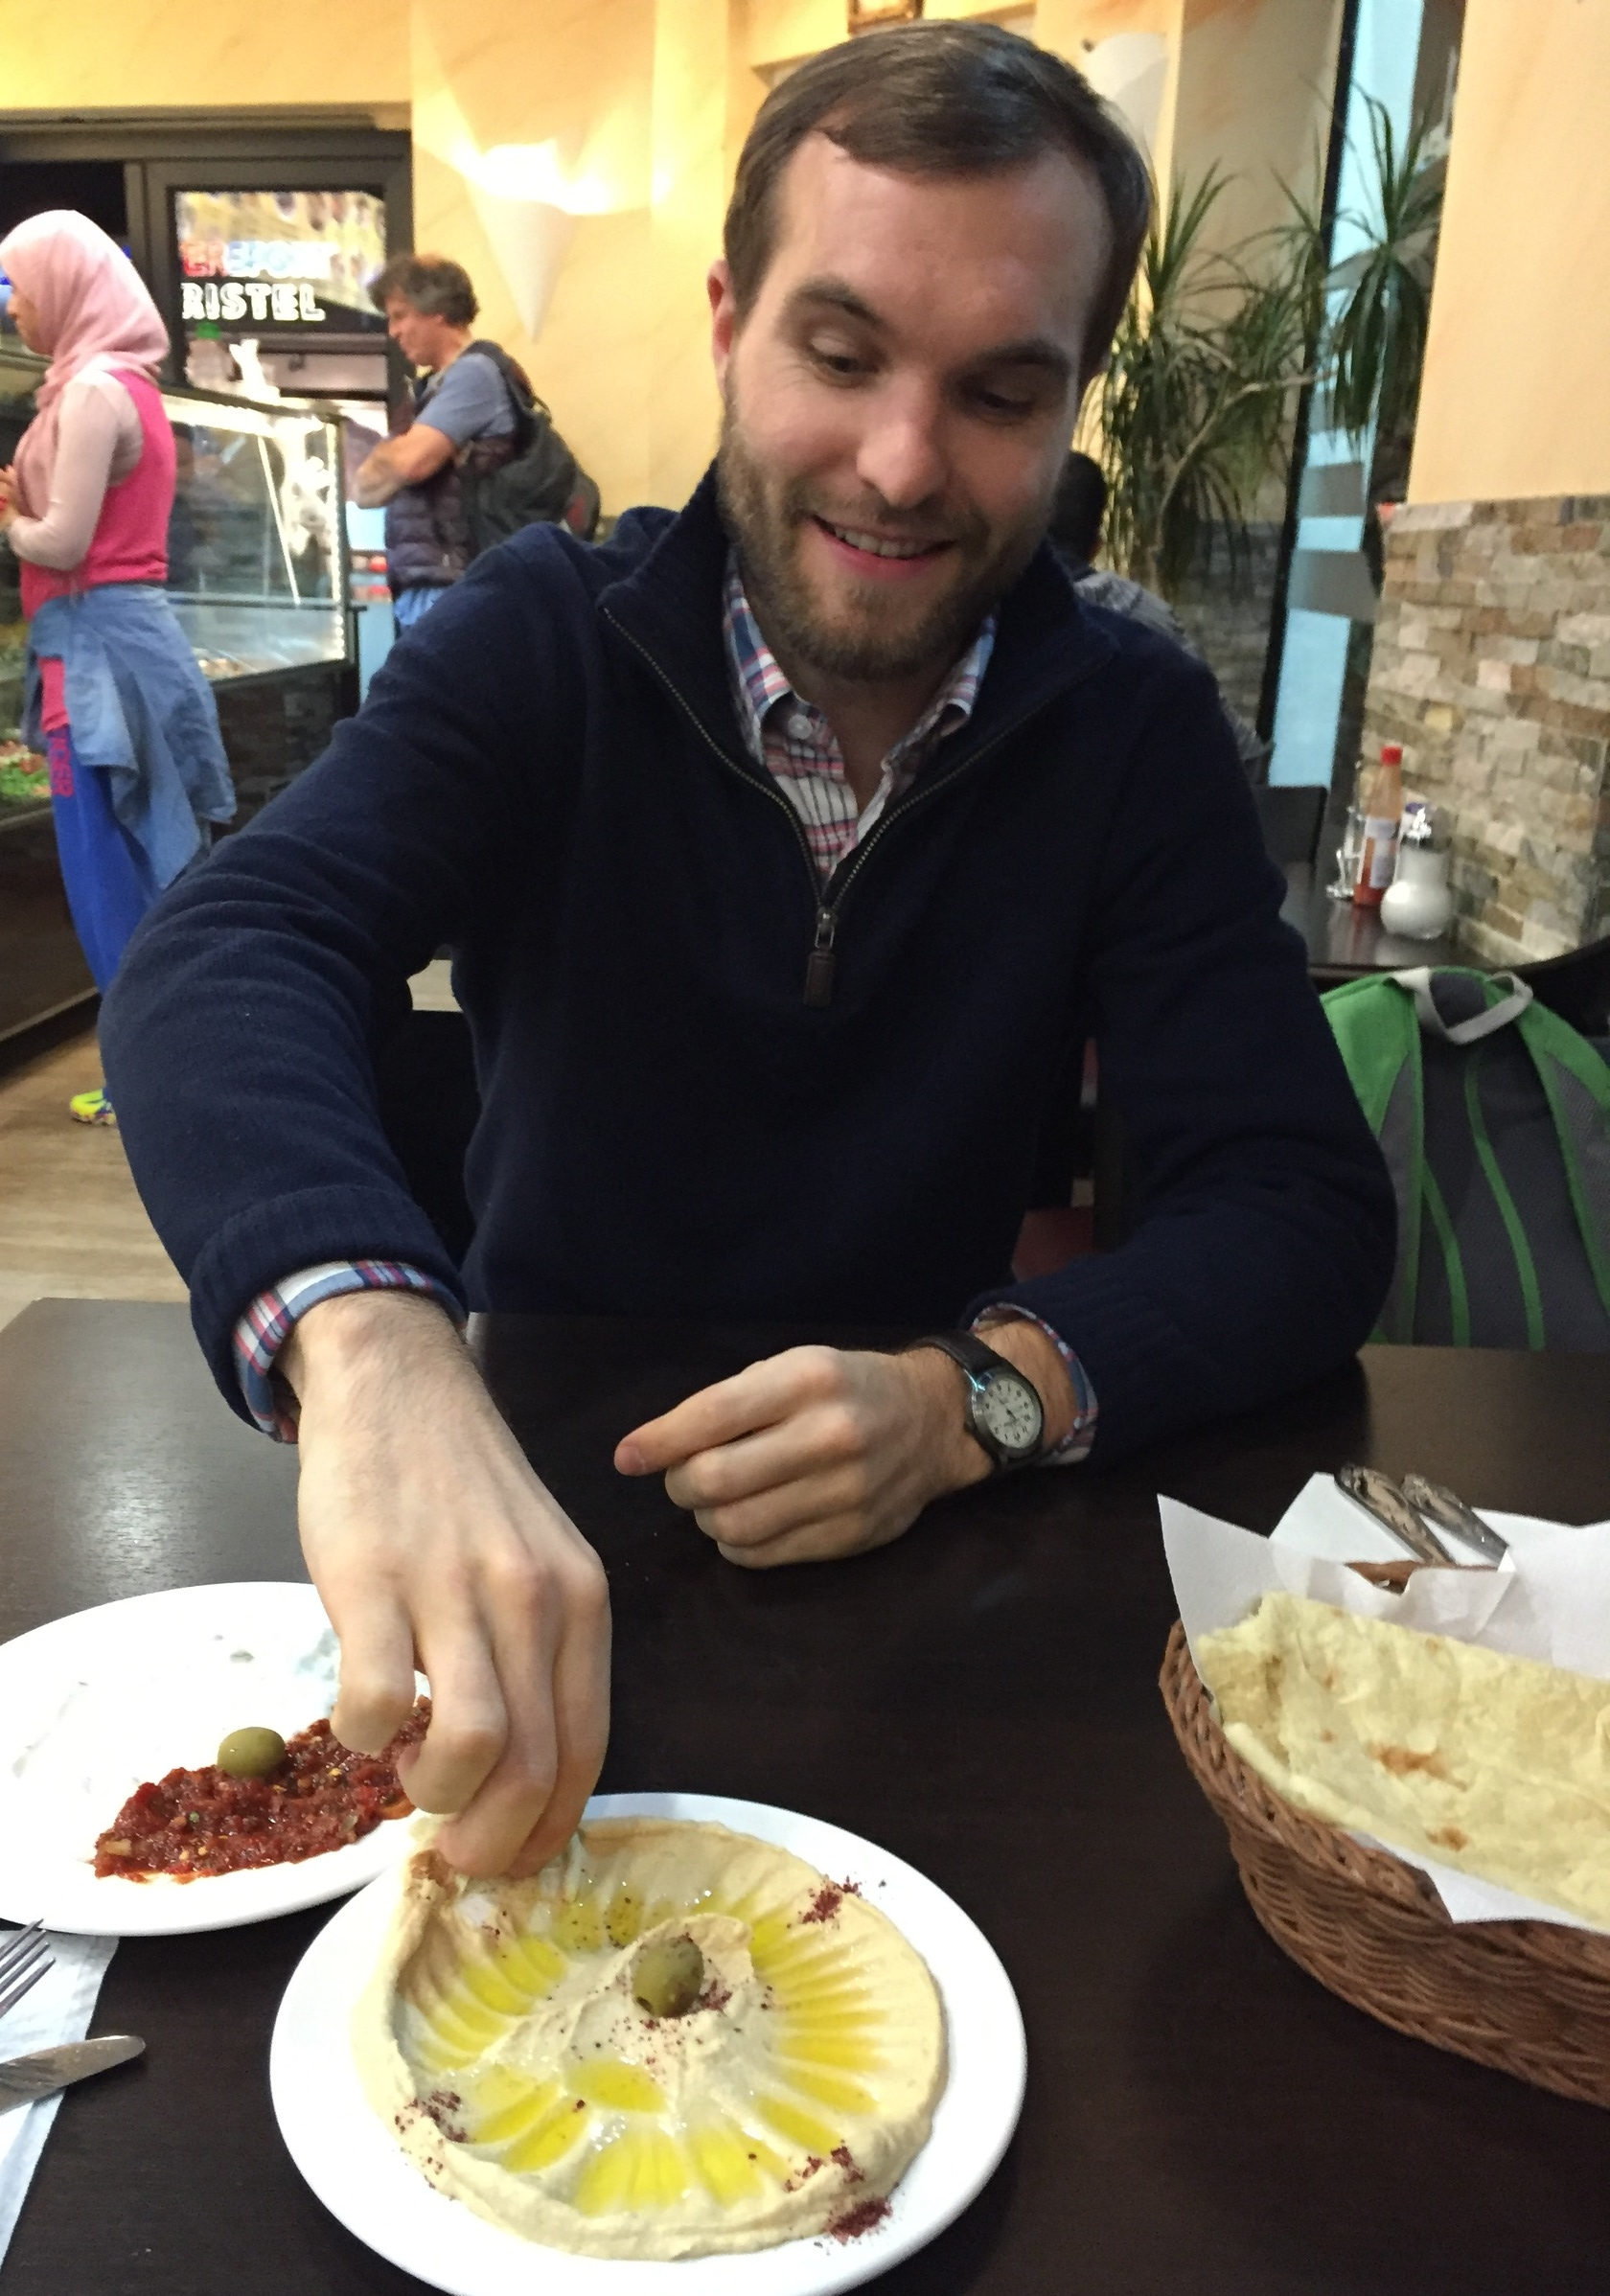 Greg enjoying hummus. (Disclaimer: Picture posted without permission of the subject.)